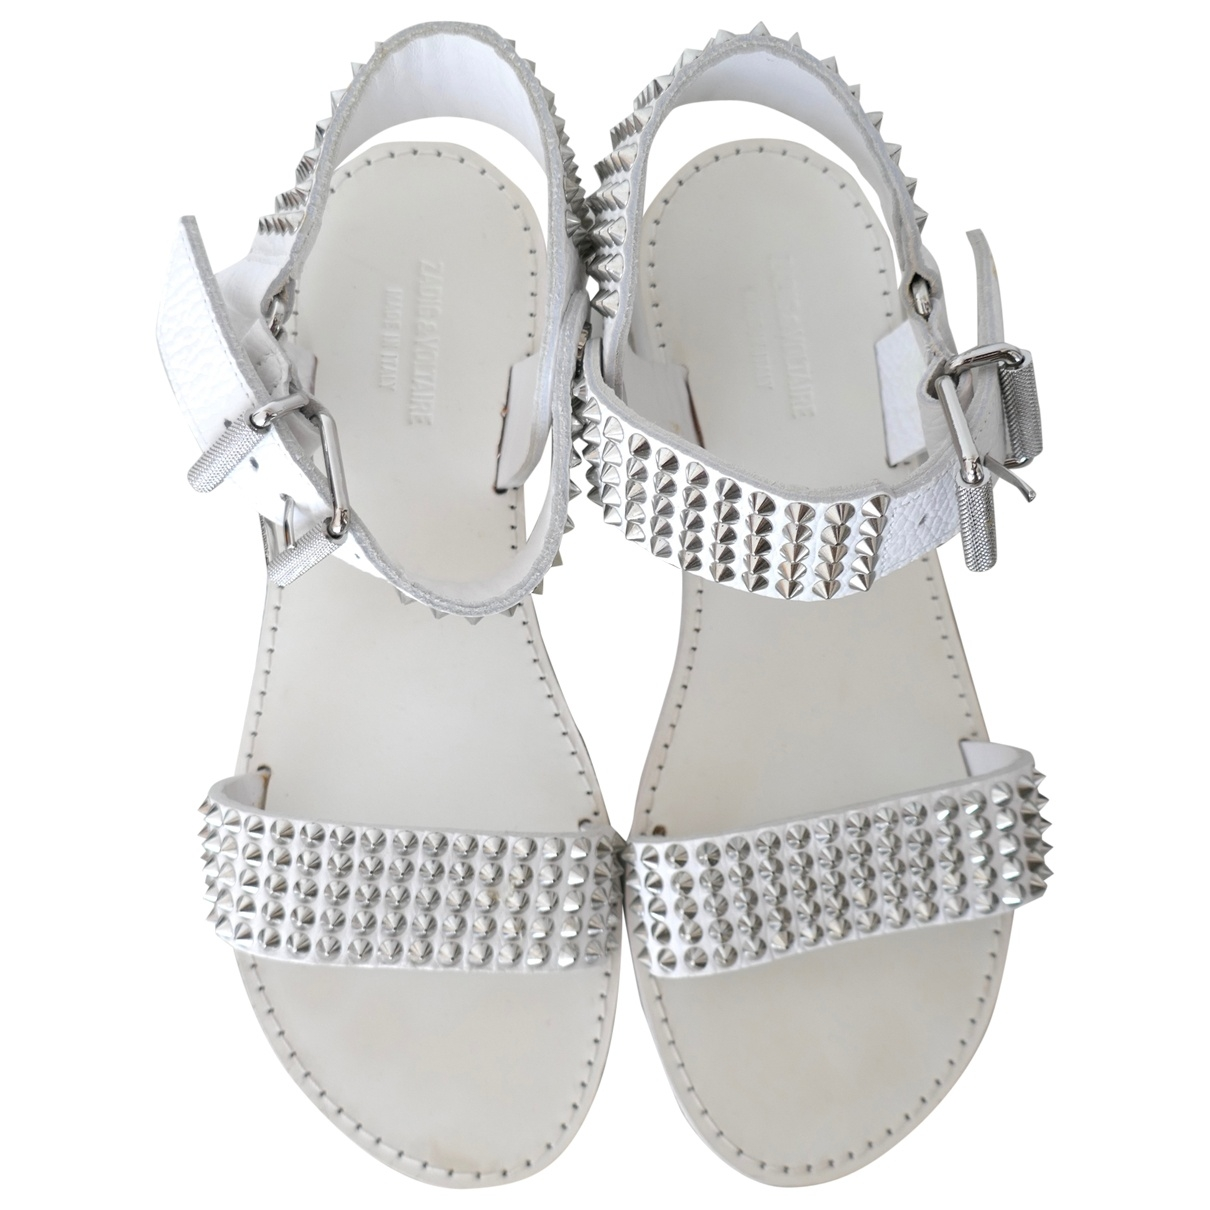 Zadig & Voltaire \N White Leather Sandals for Women 37 EU